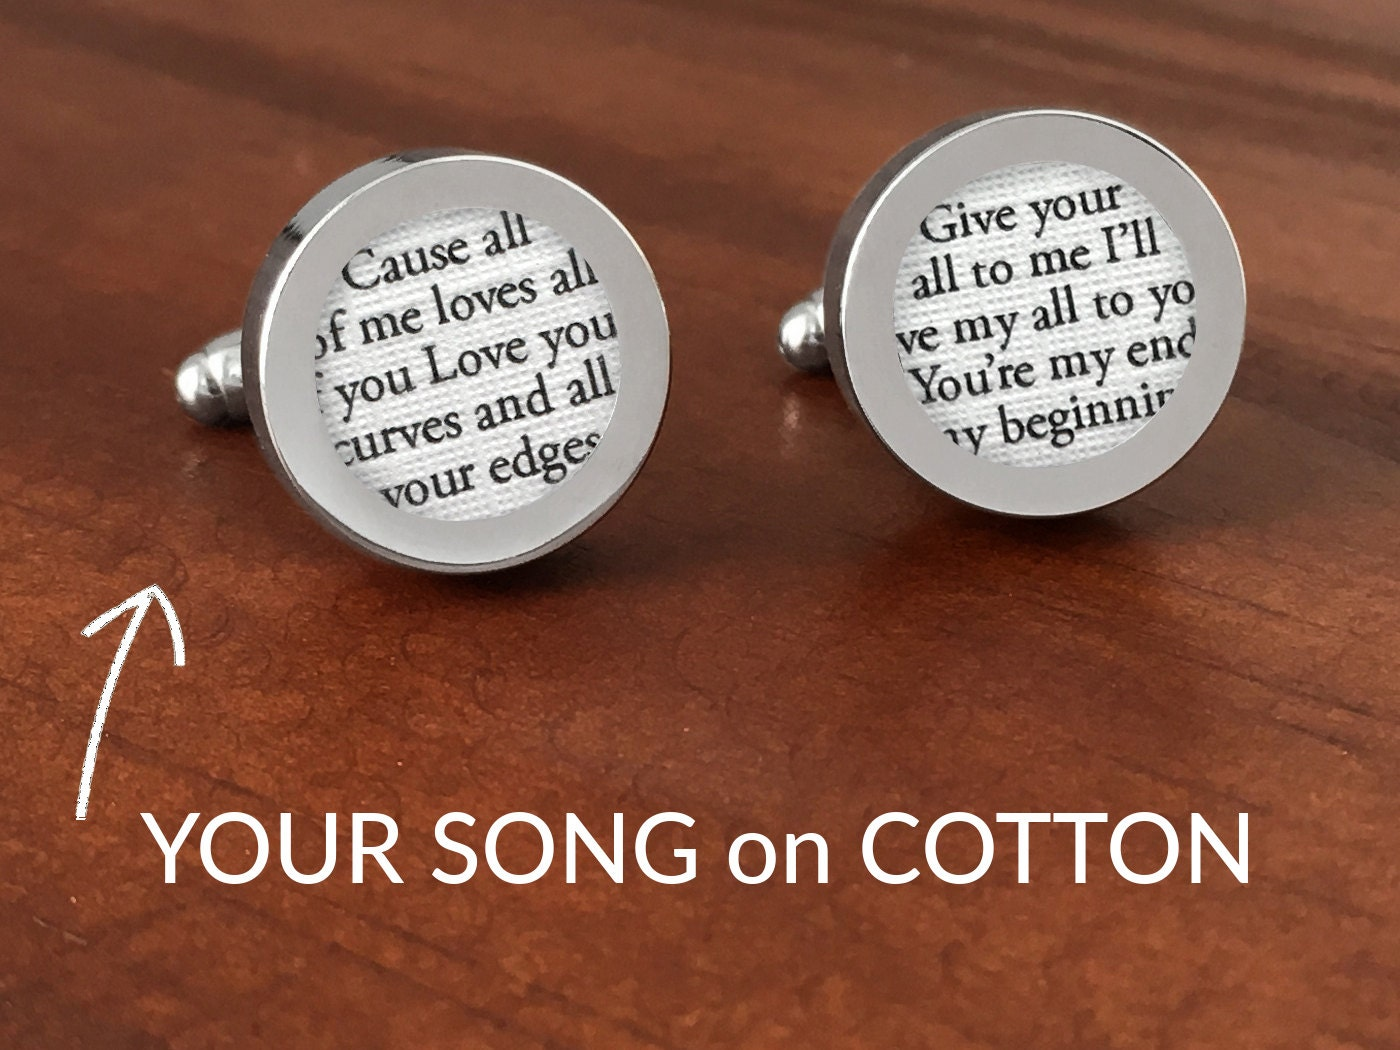 Second Wedding Anniversary Gifts For Men: Cotton Anniversary Gift For Him / 2nd Anniversary Gifts For